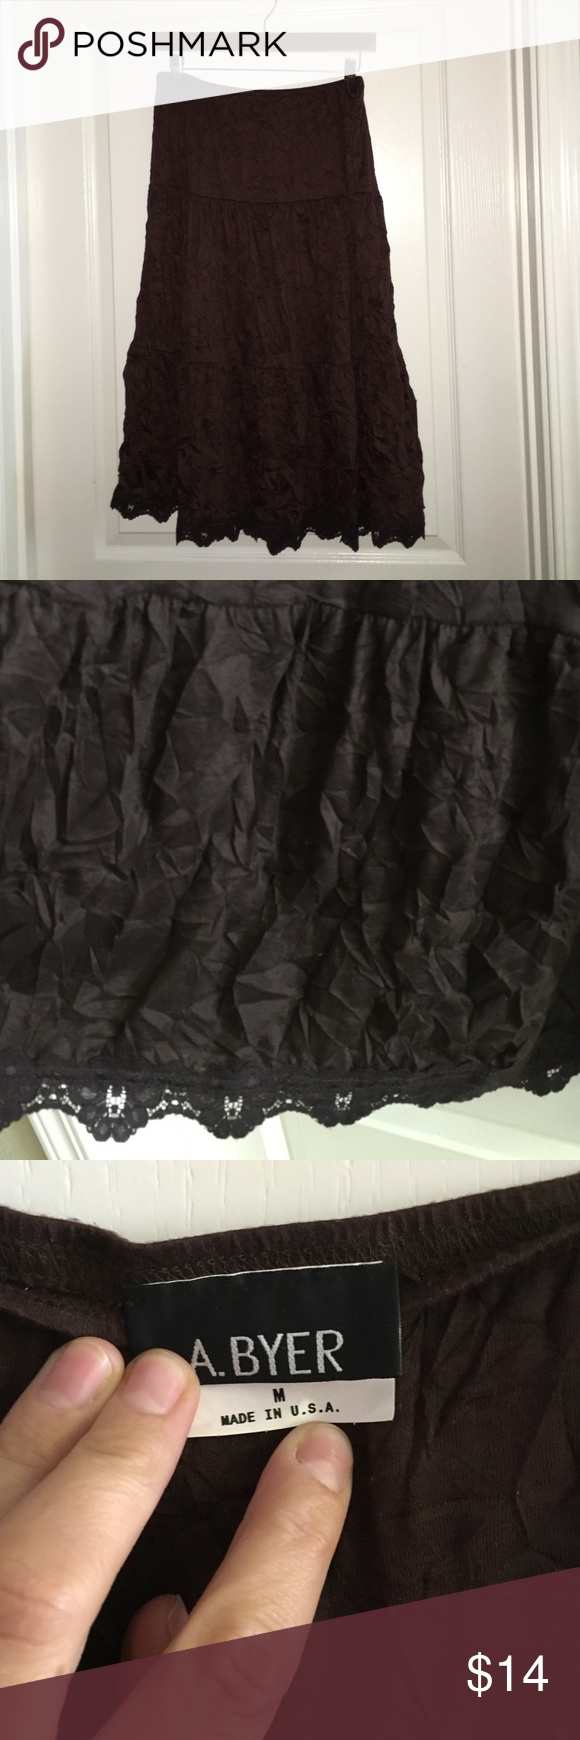 """Brown Crinkle Skirt by A.Byer size medium Brown Crinkle Skirt by A.Byer size medium length measures 28"""" waist is a stretchy band at stretches to 30"""" fun skirt! A.Byer  Skirts"""